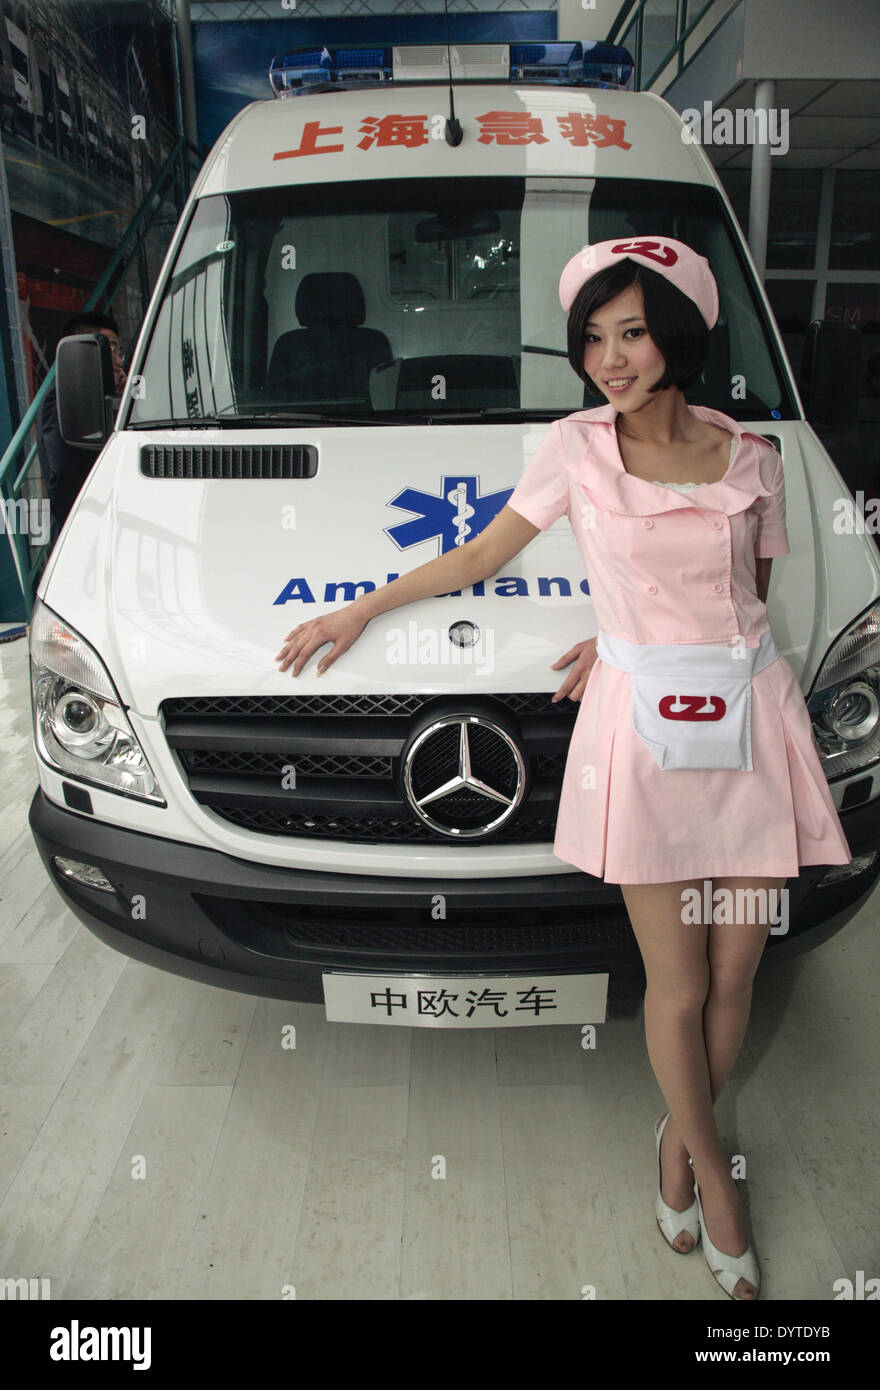 A model stands besides an ambulance vehicle by ZOEMO - Stock Image